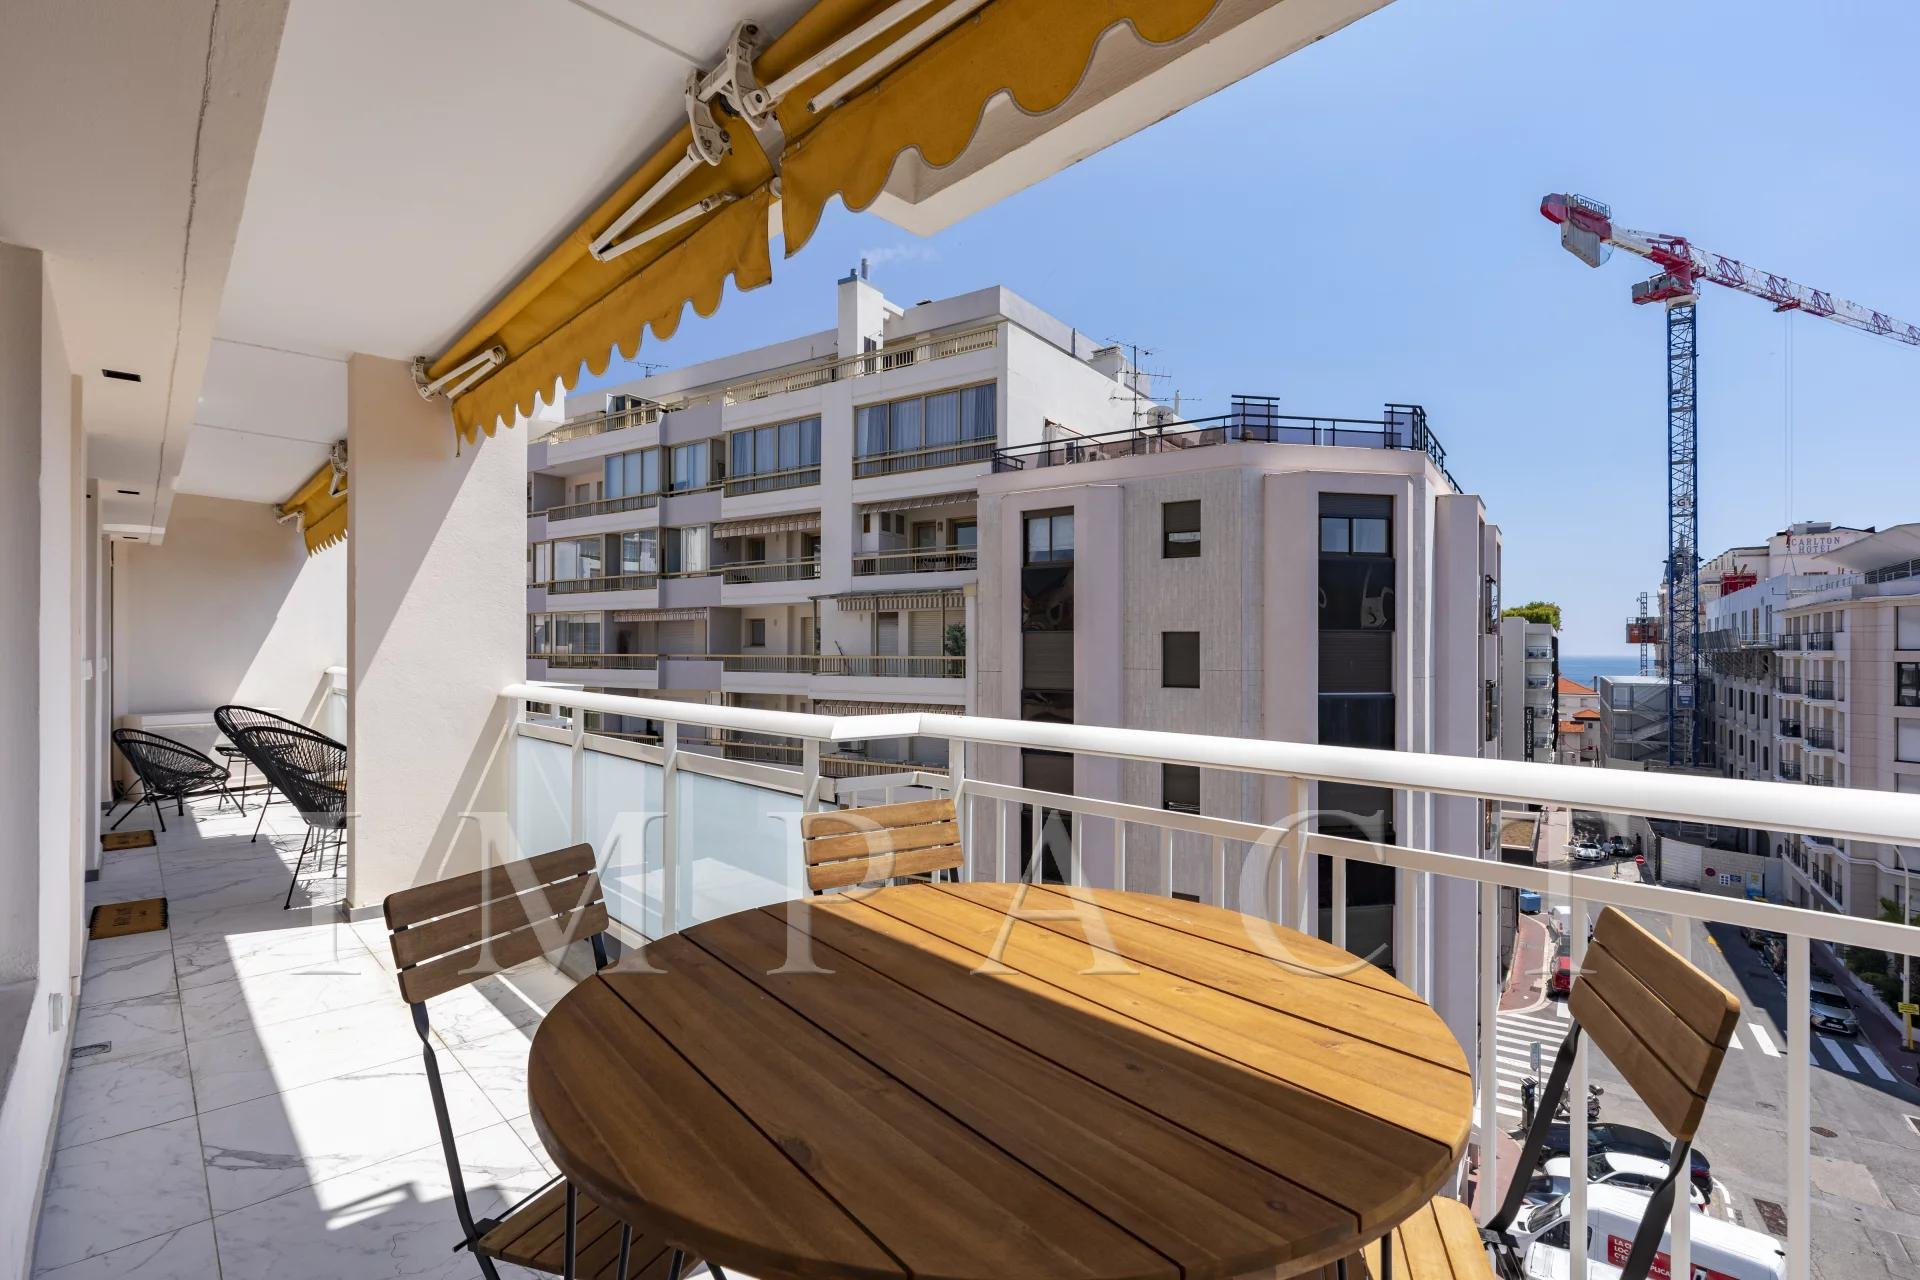 3 bedroom apartment for rent Center Cannes